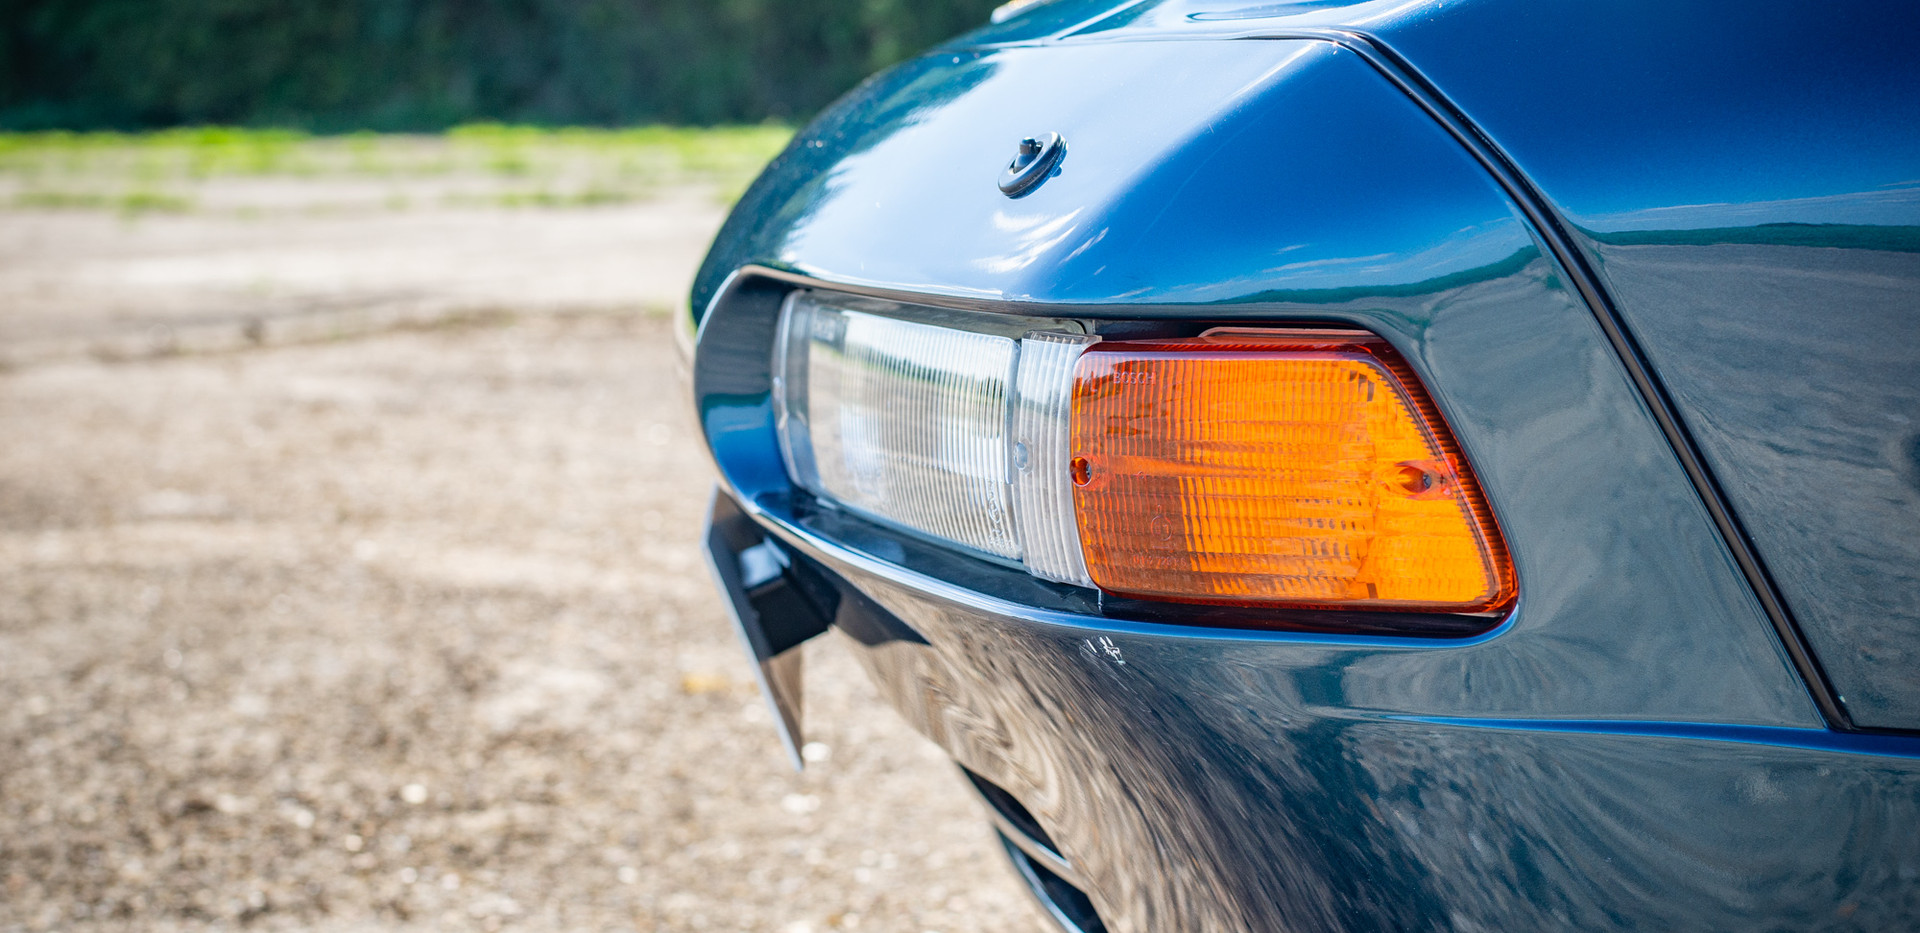 Porsche_928_ForSale Uk London-13.jpg